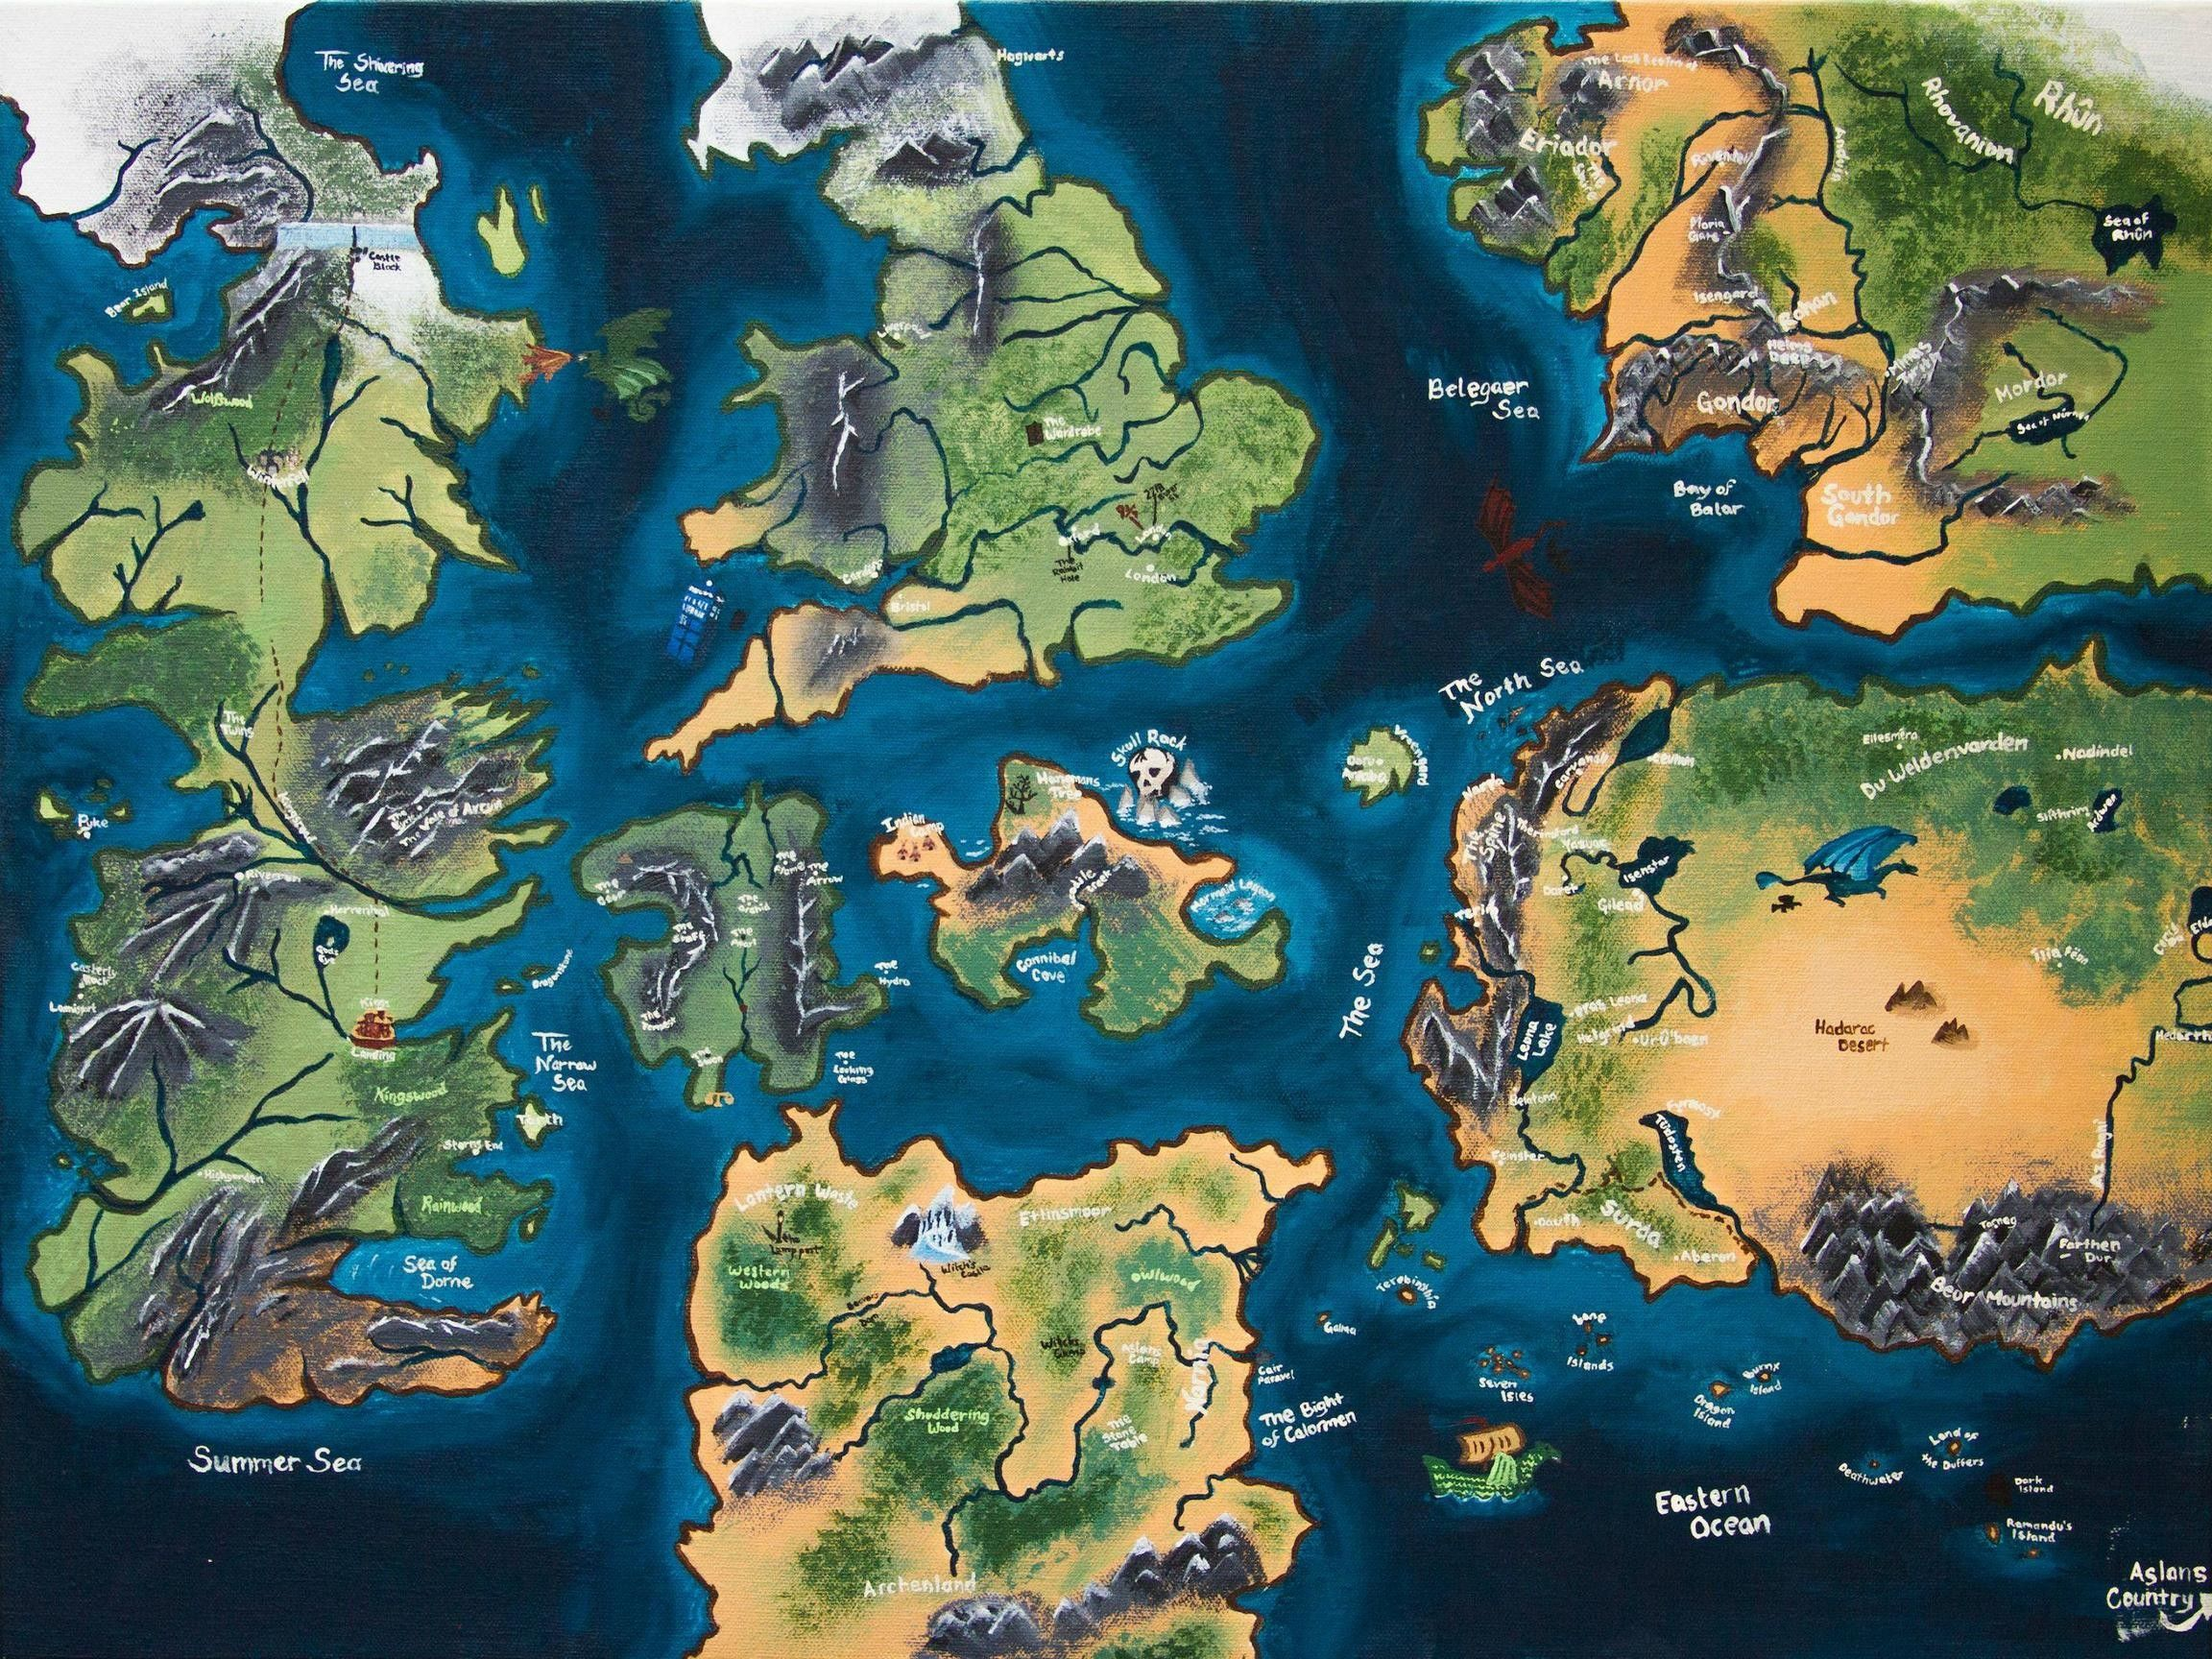 Game of Thrones Map Wallpapers - Top Free Game of Thrones Map